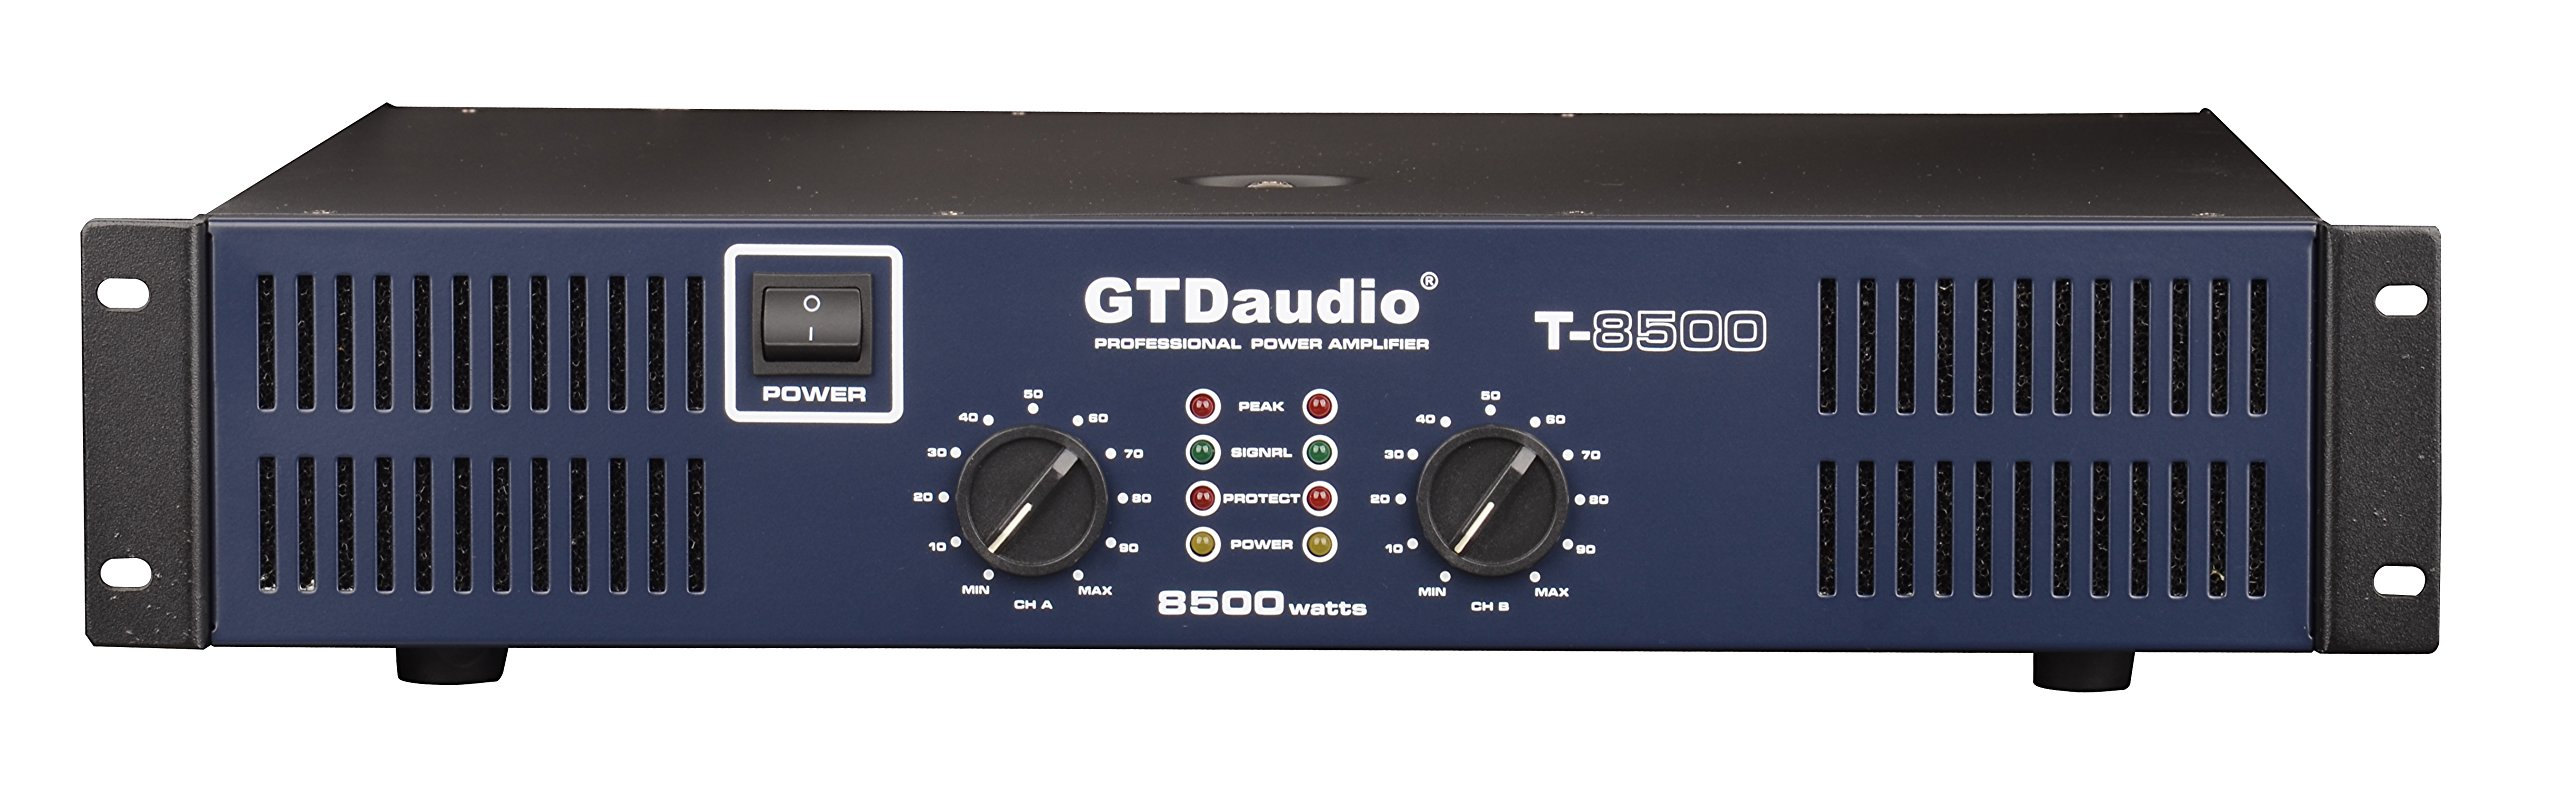 GTD Audio 2 Channel 8500 Watts 2U Stereo Professional Power Amplifier AMP by GTD Audio